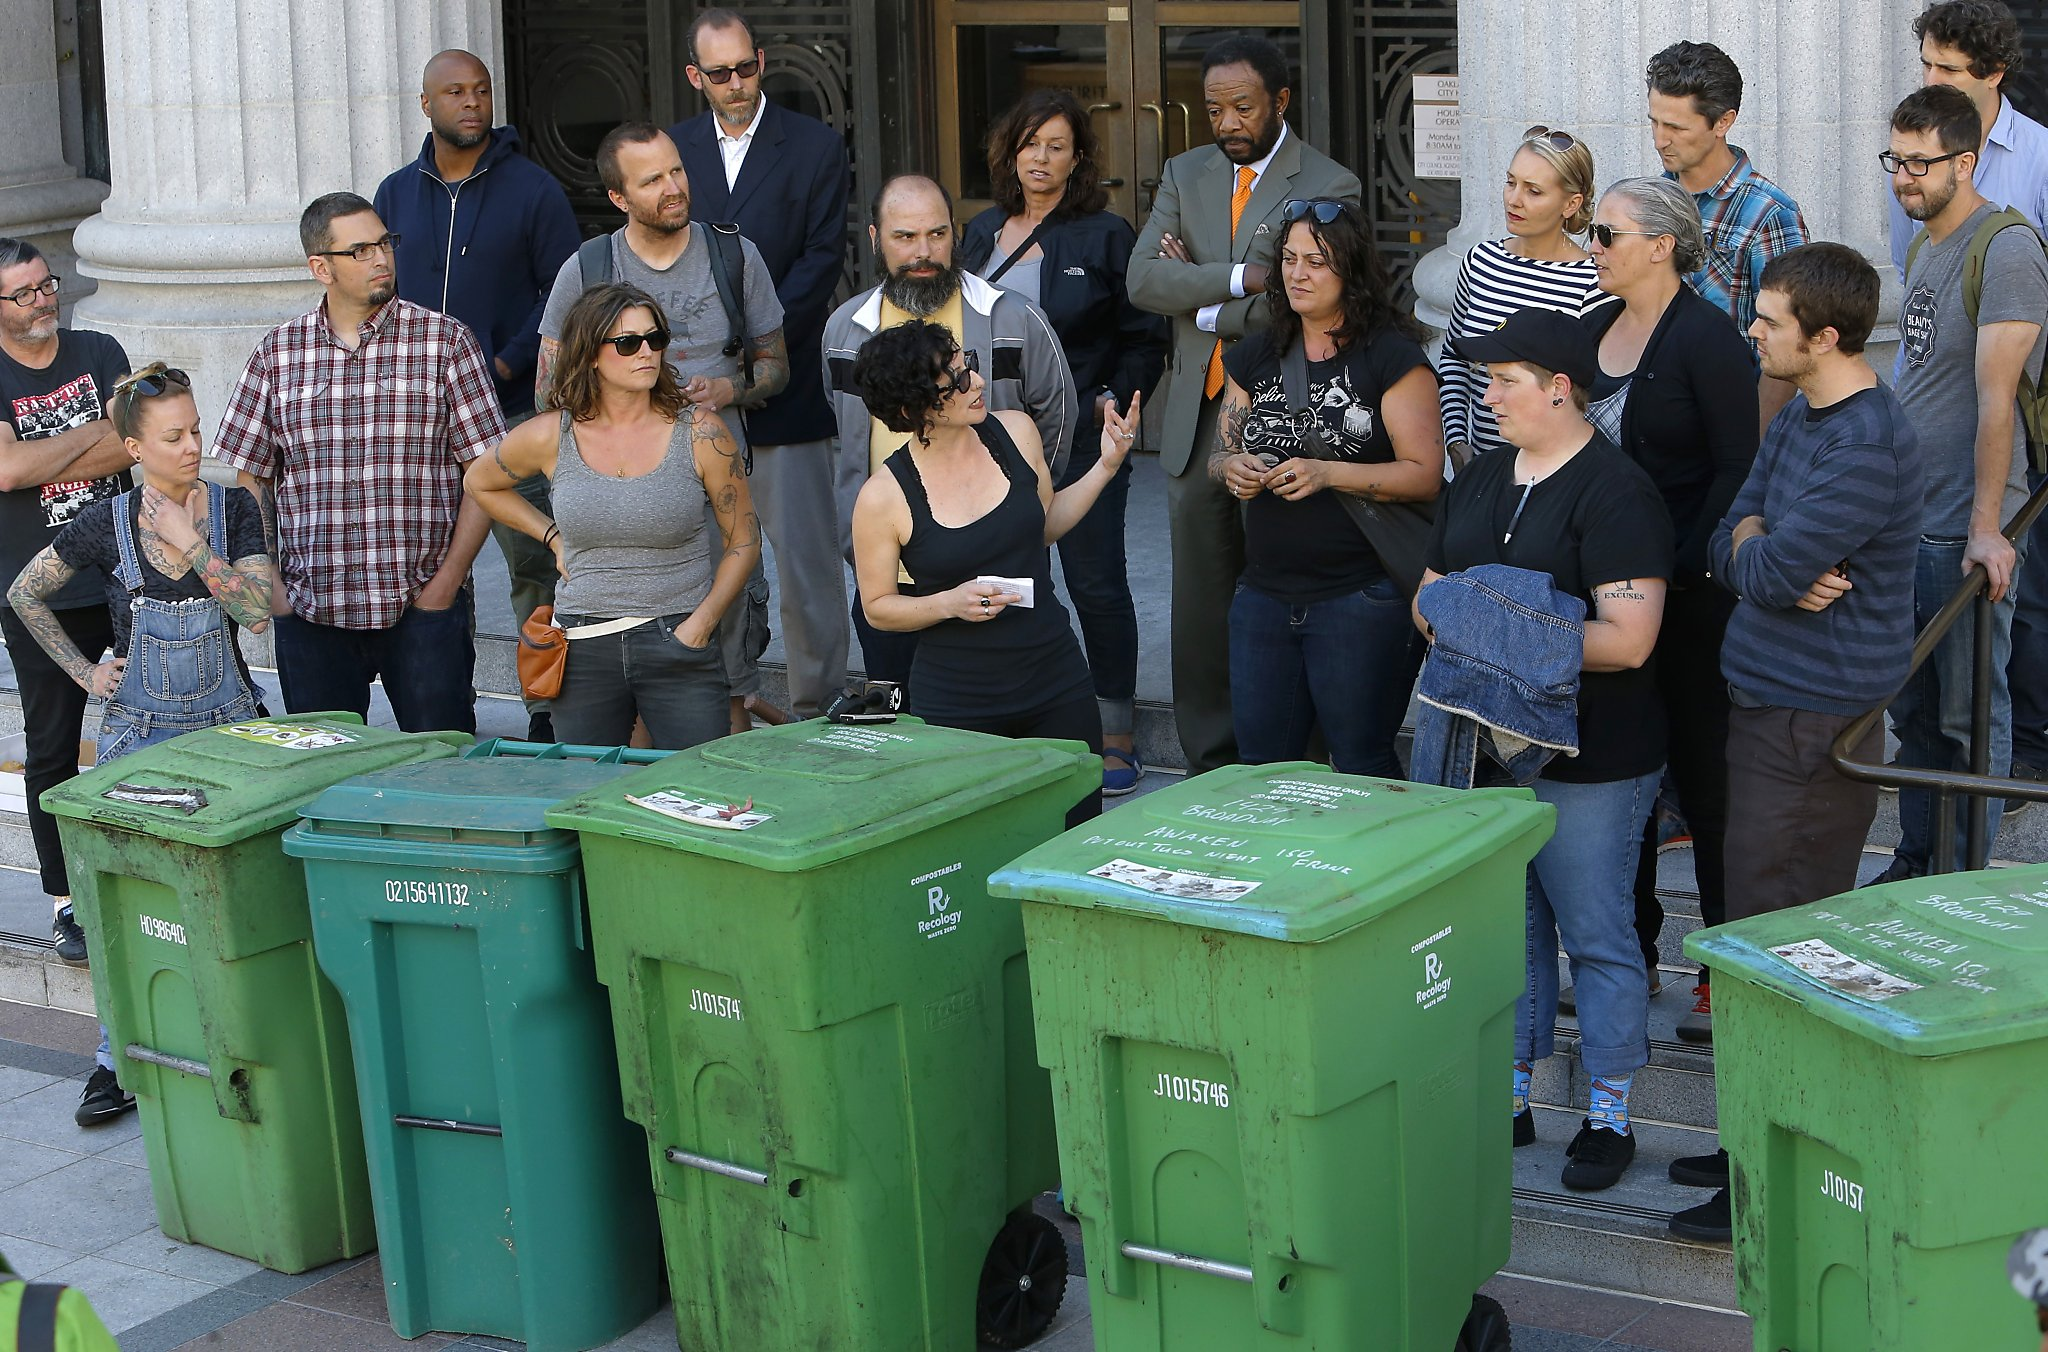 Oakland\'s high composting fees rotten - SFChronicle.com